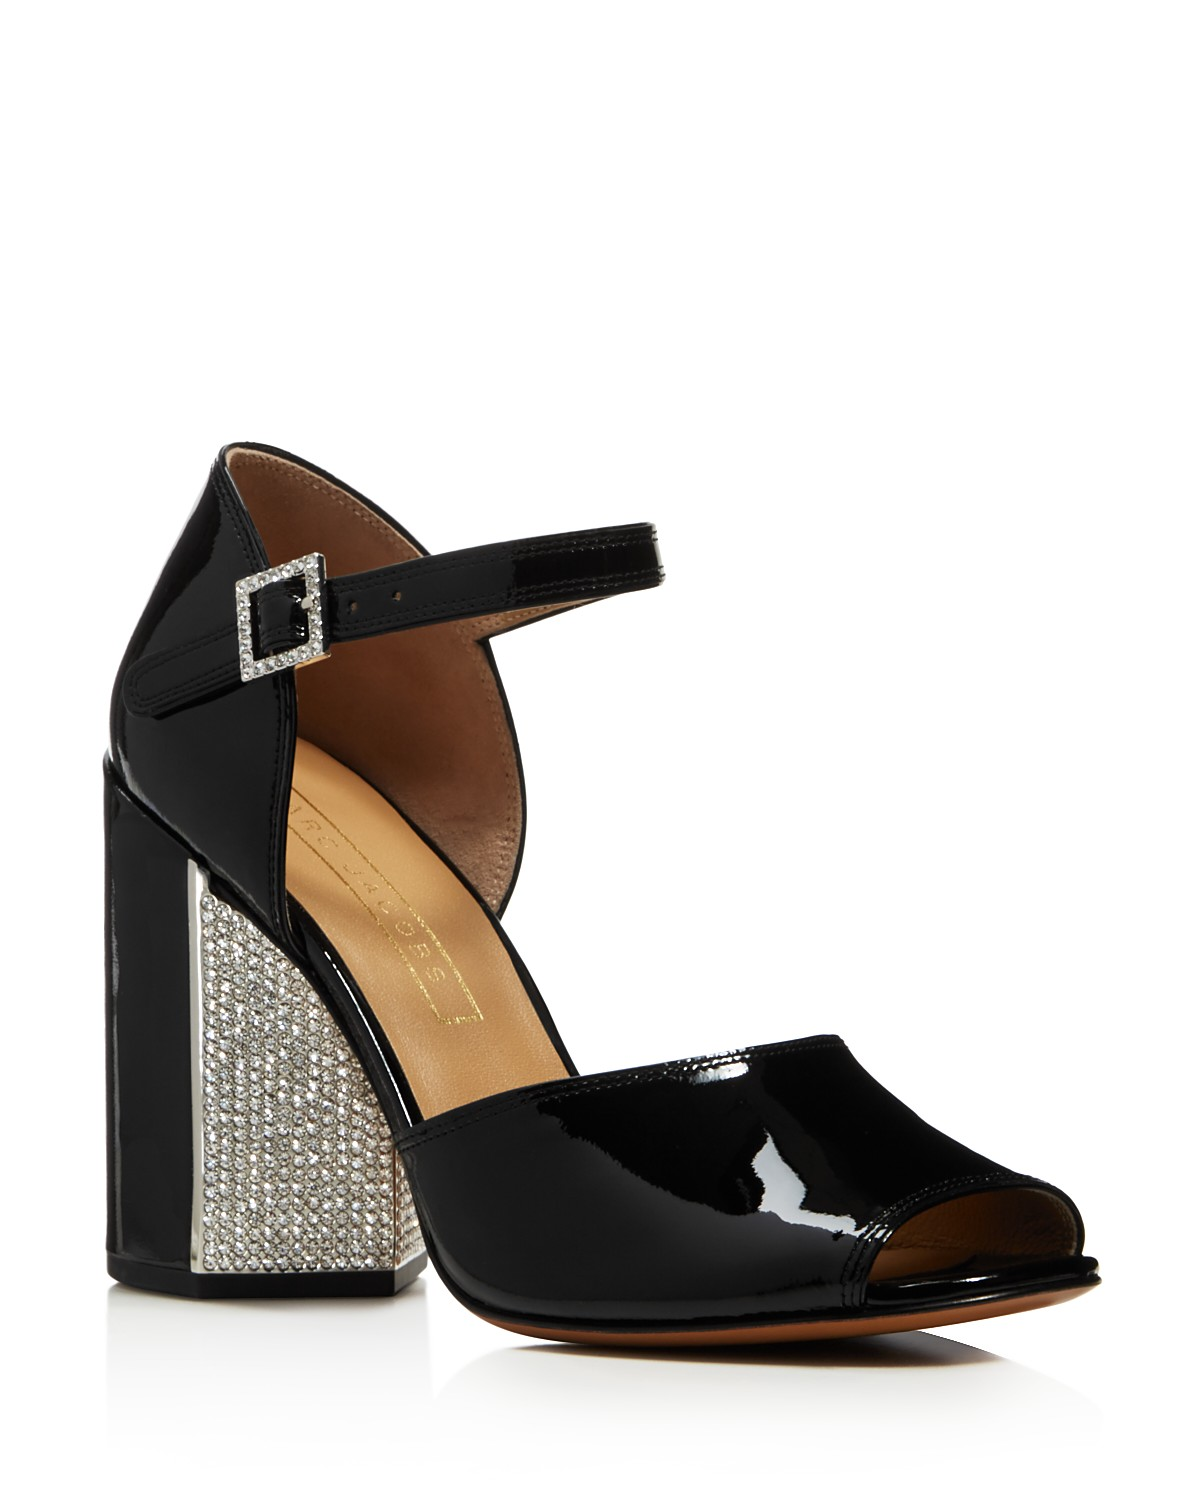 Marc Jacobs Women's Kasia Embellished Patent Leather Block Heel Sandals mqQJE